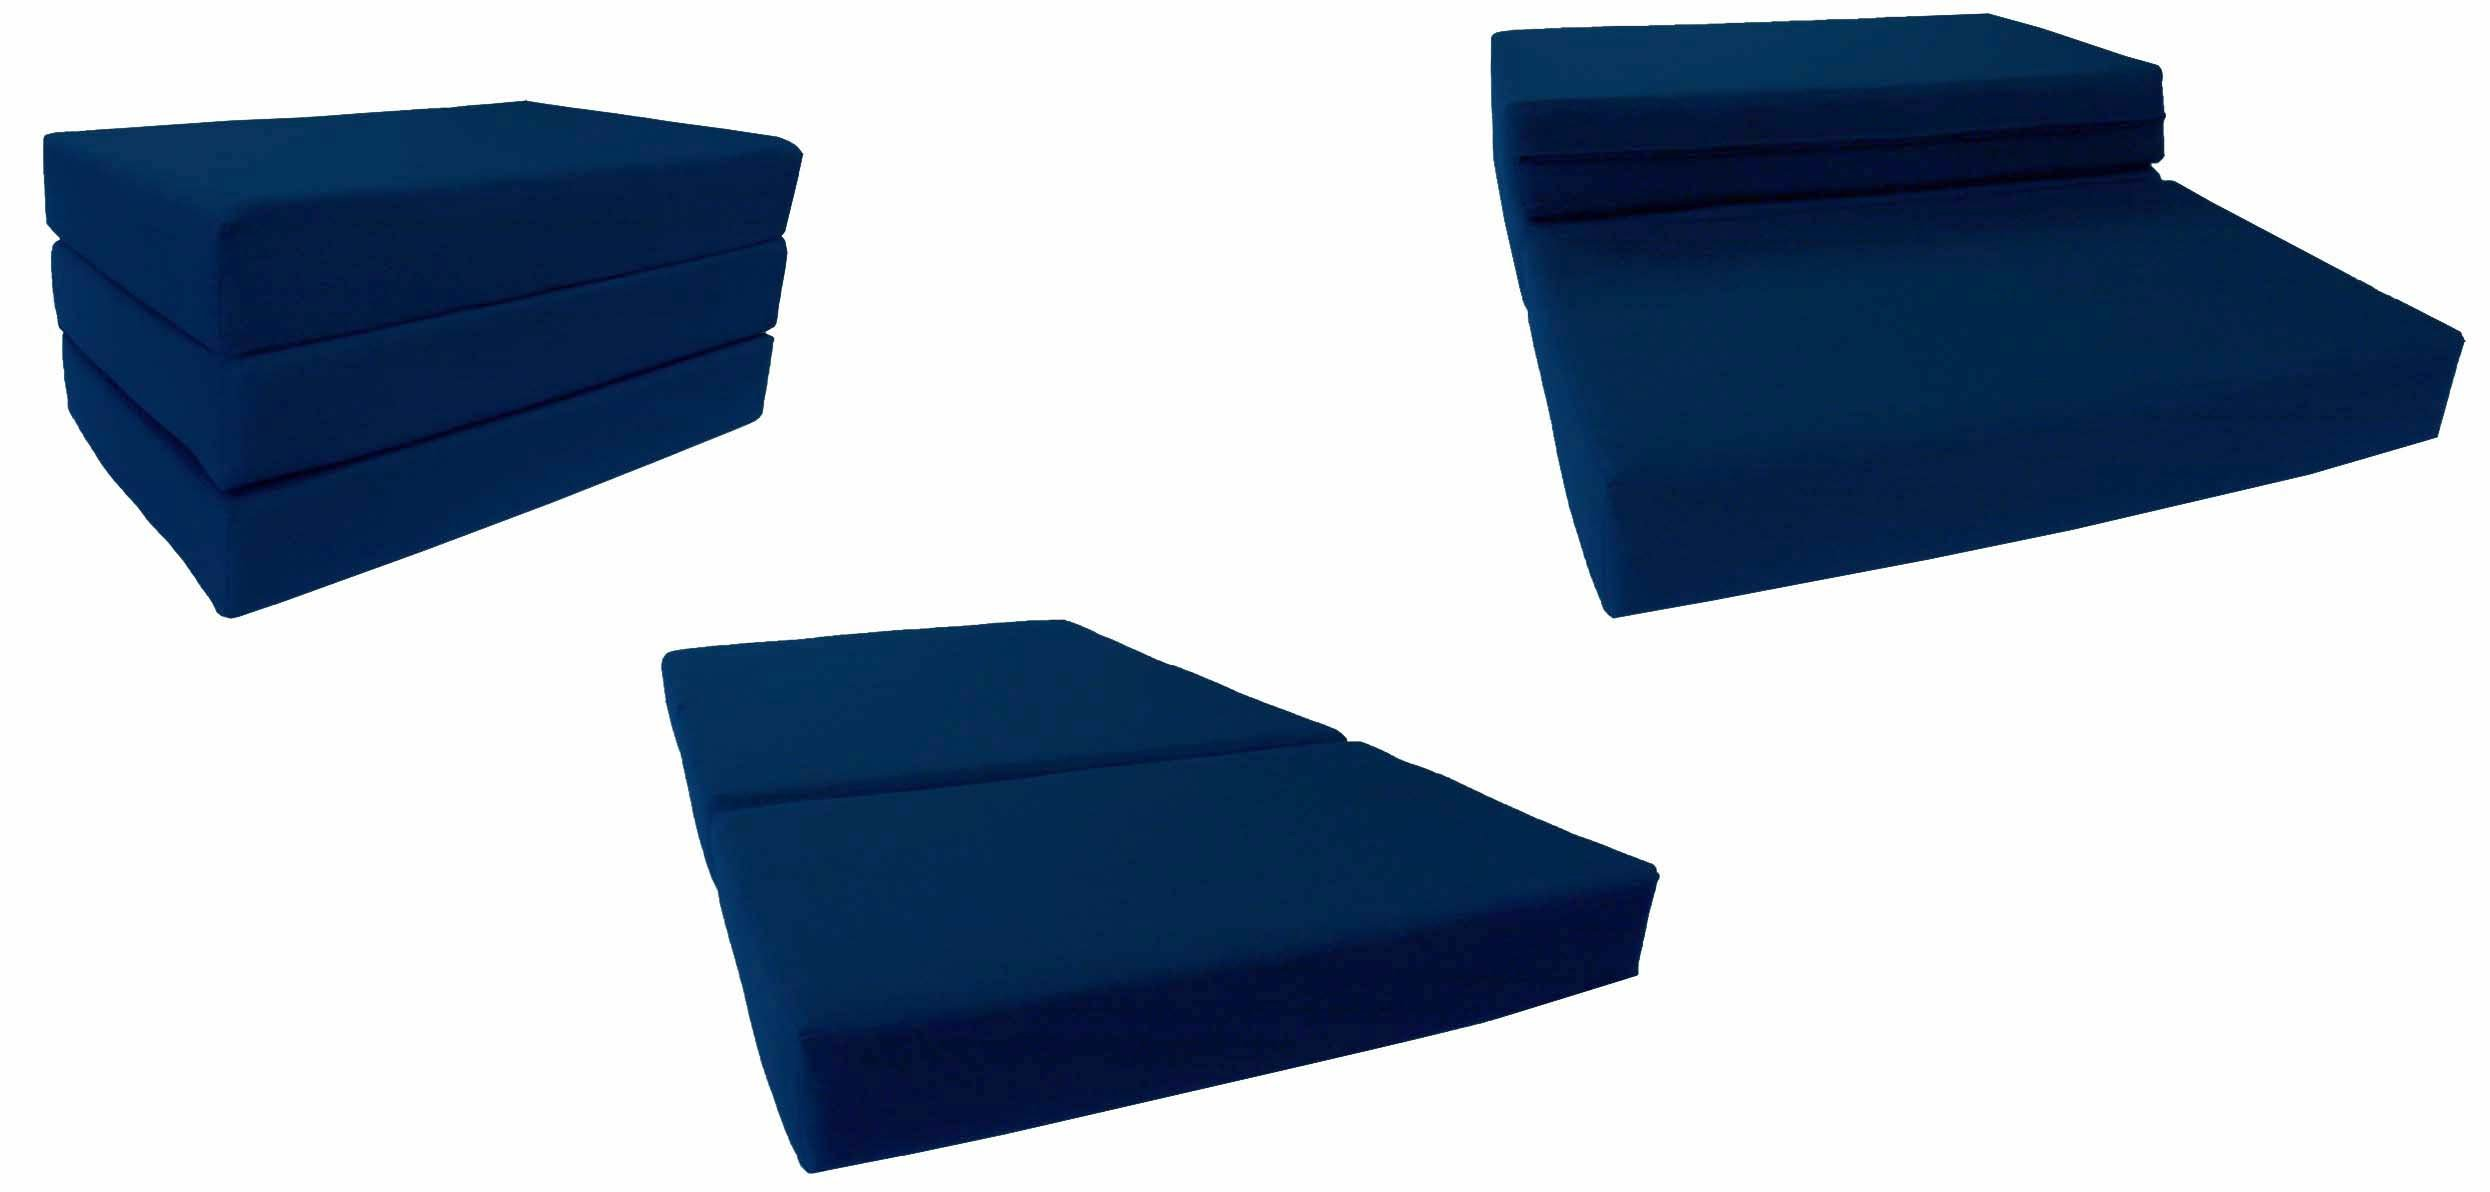 Navy Solid Twin Size Shikibuton Trifold Foam Beds 6 Thick x 39 W x 75 inches Long, 1.8 lbs high density resilient white foam, Floor Foam Folding Mats.